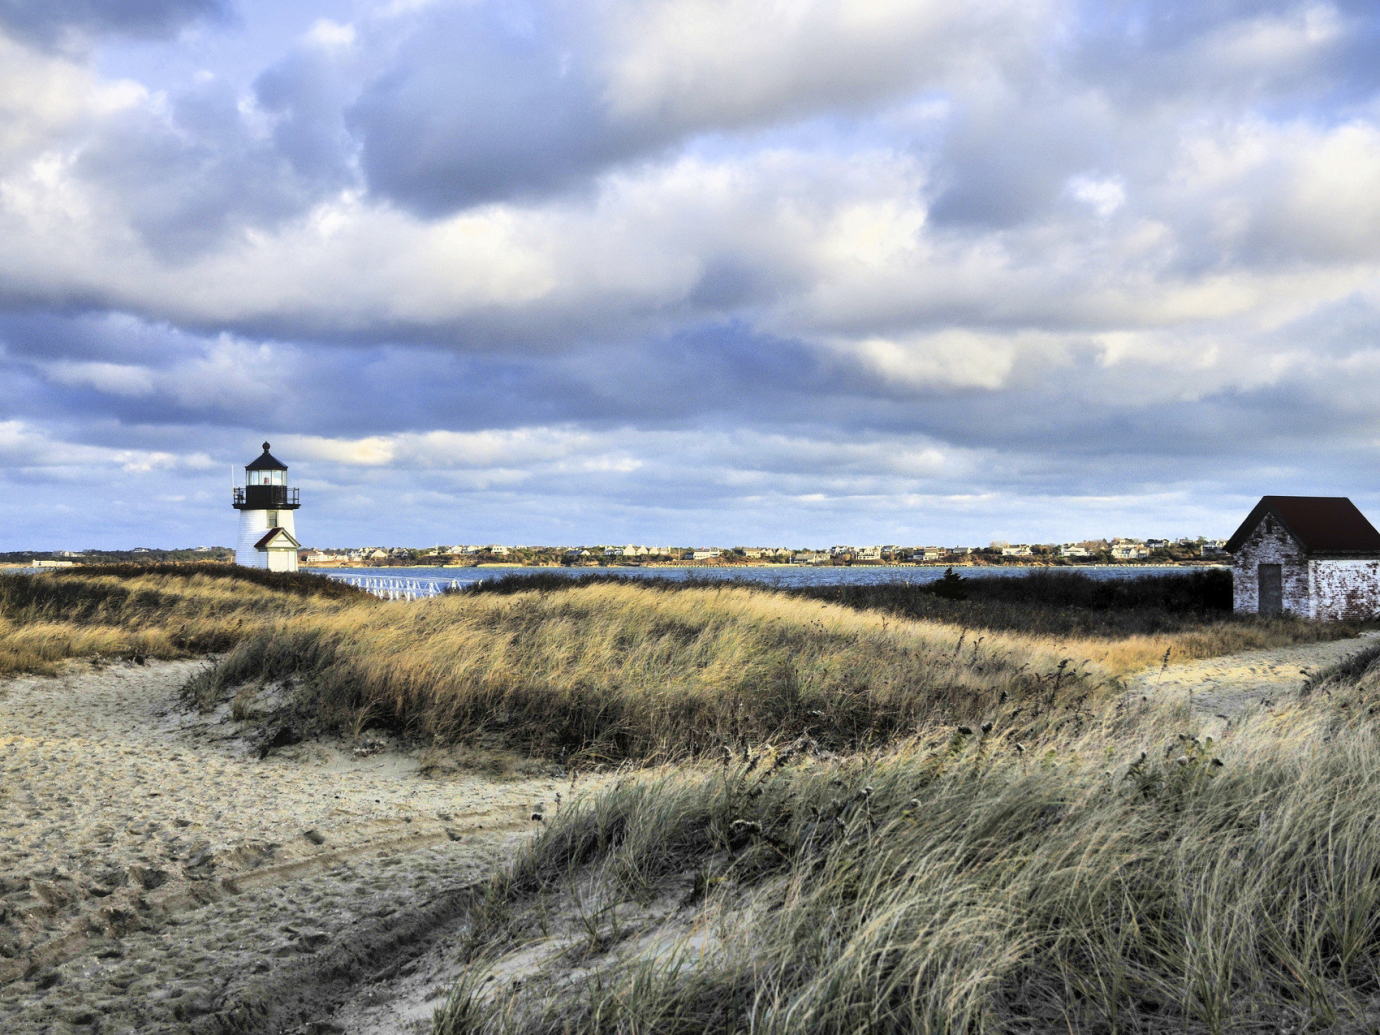 Cold, windy landscape with lighthouse in Nantucket